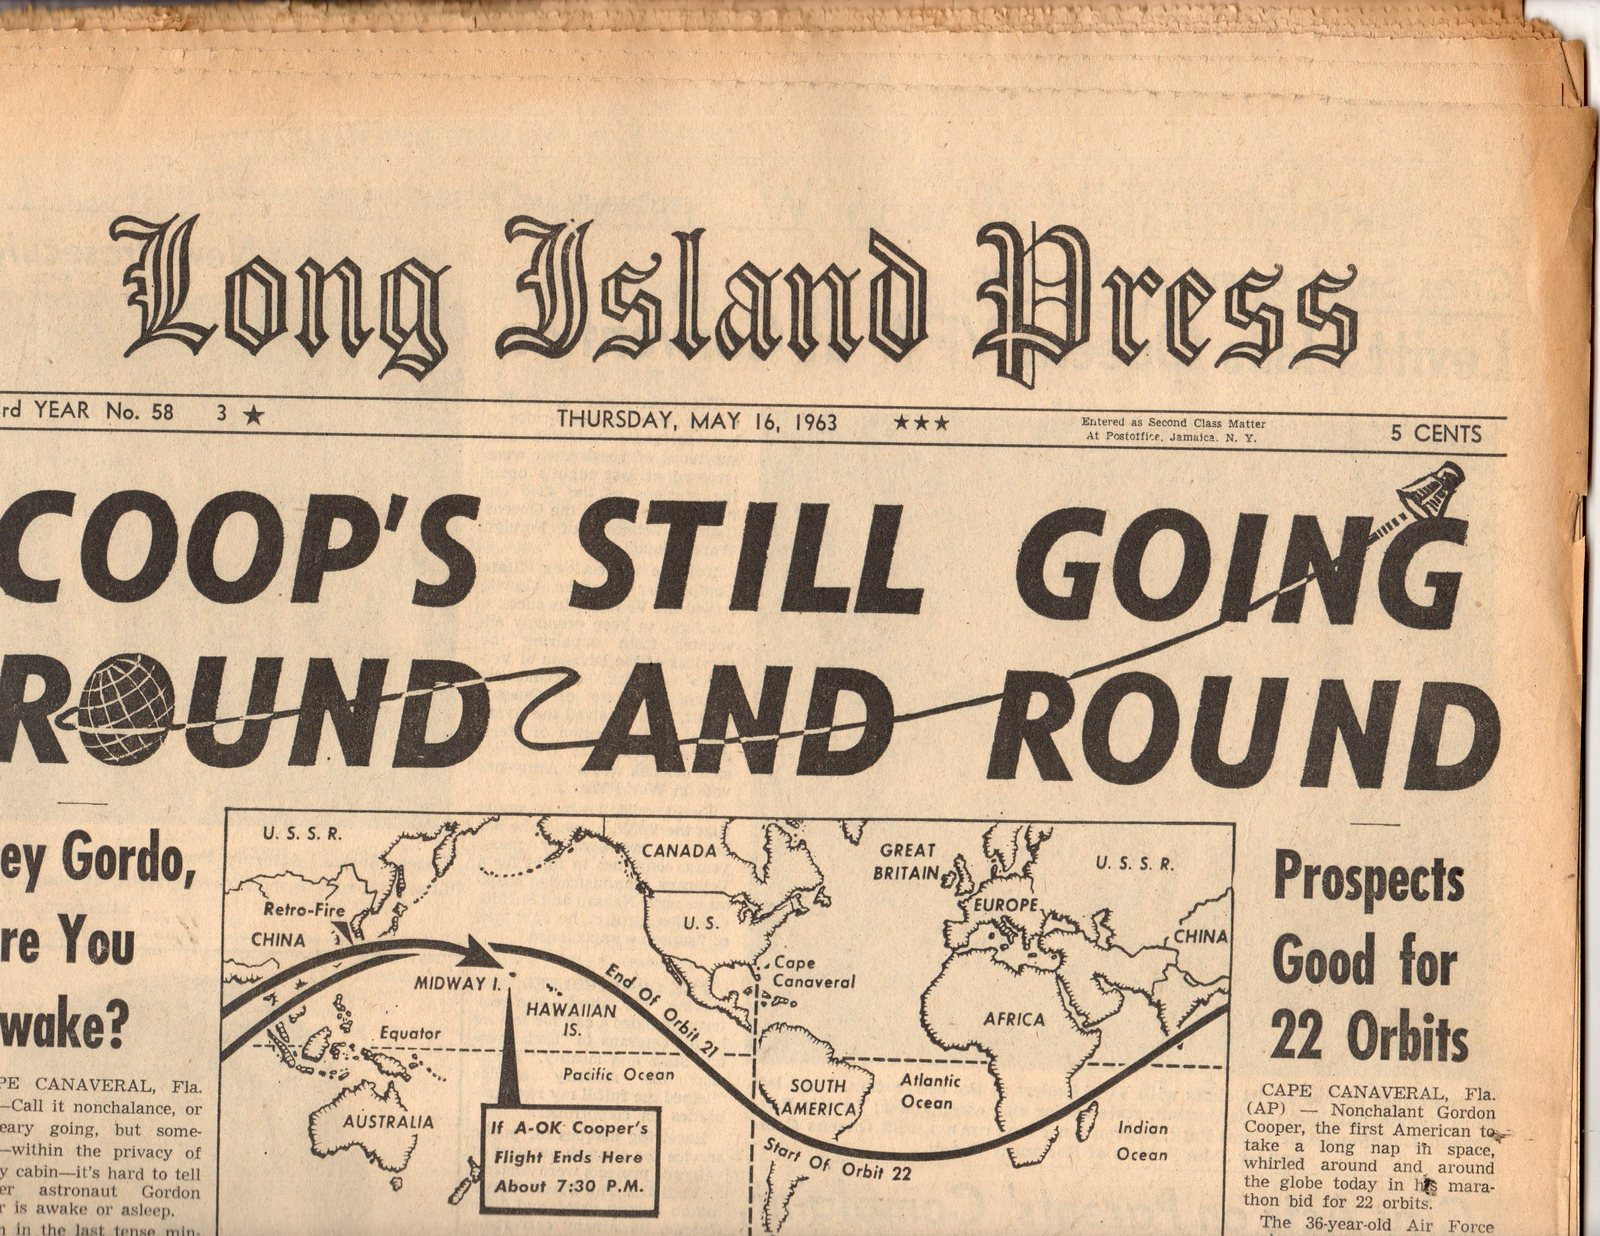 Primary image for Long Island Press Newspaper,(1963) Thursday, May 16 1963